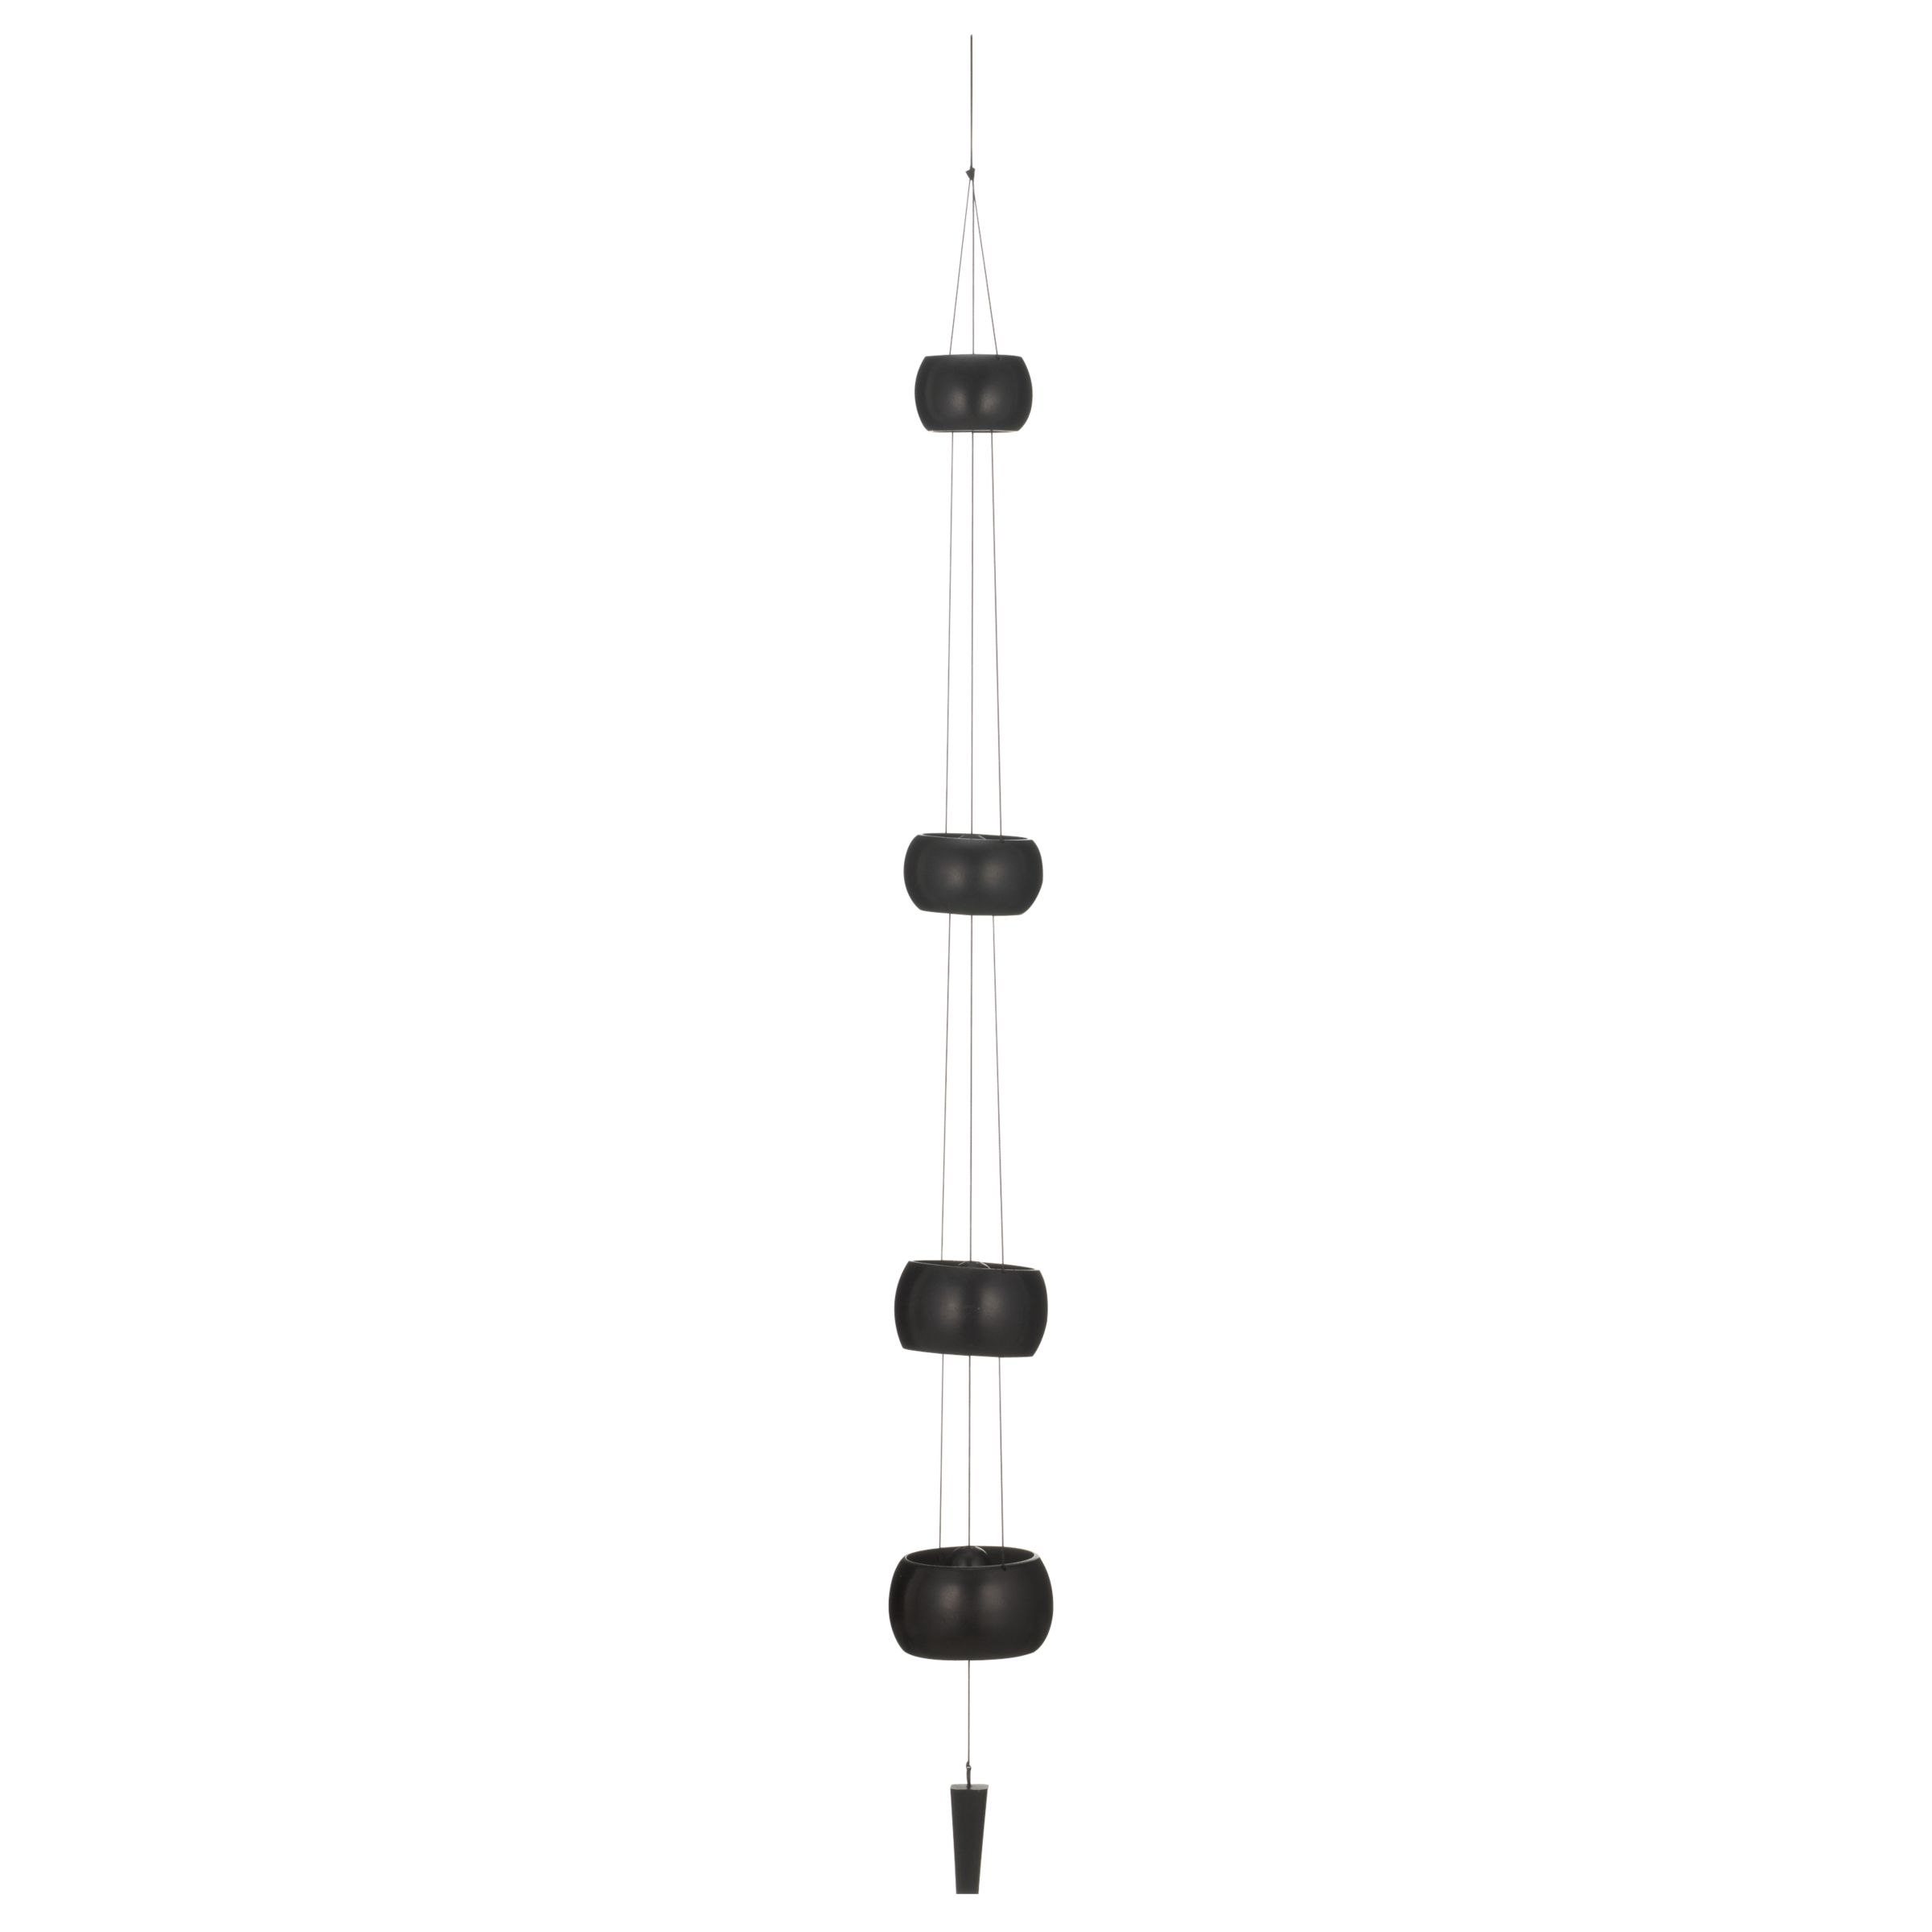 Bakelite Wind Chime